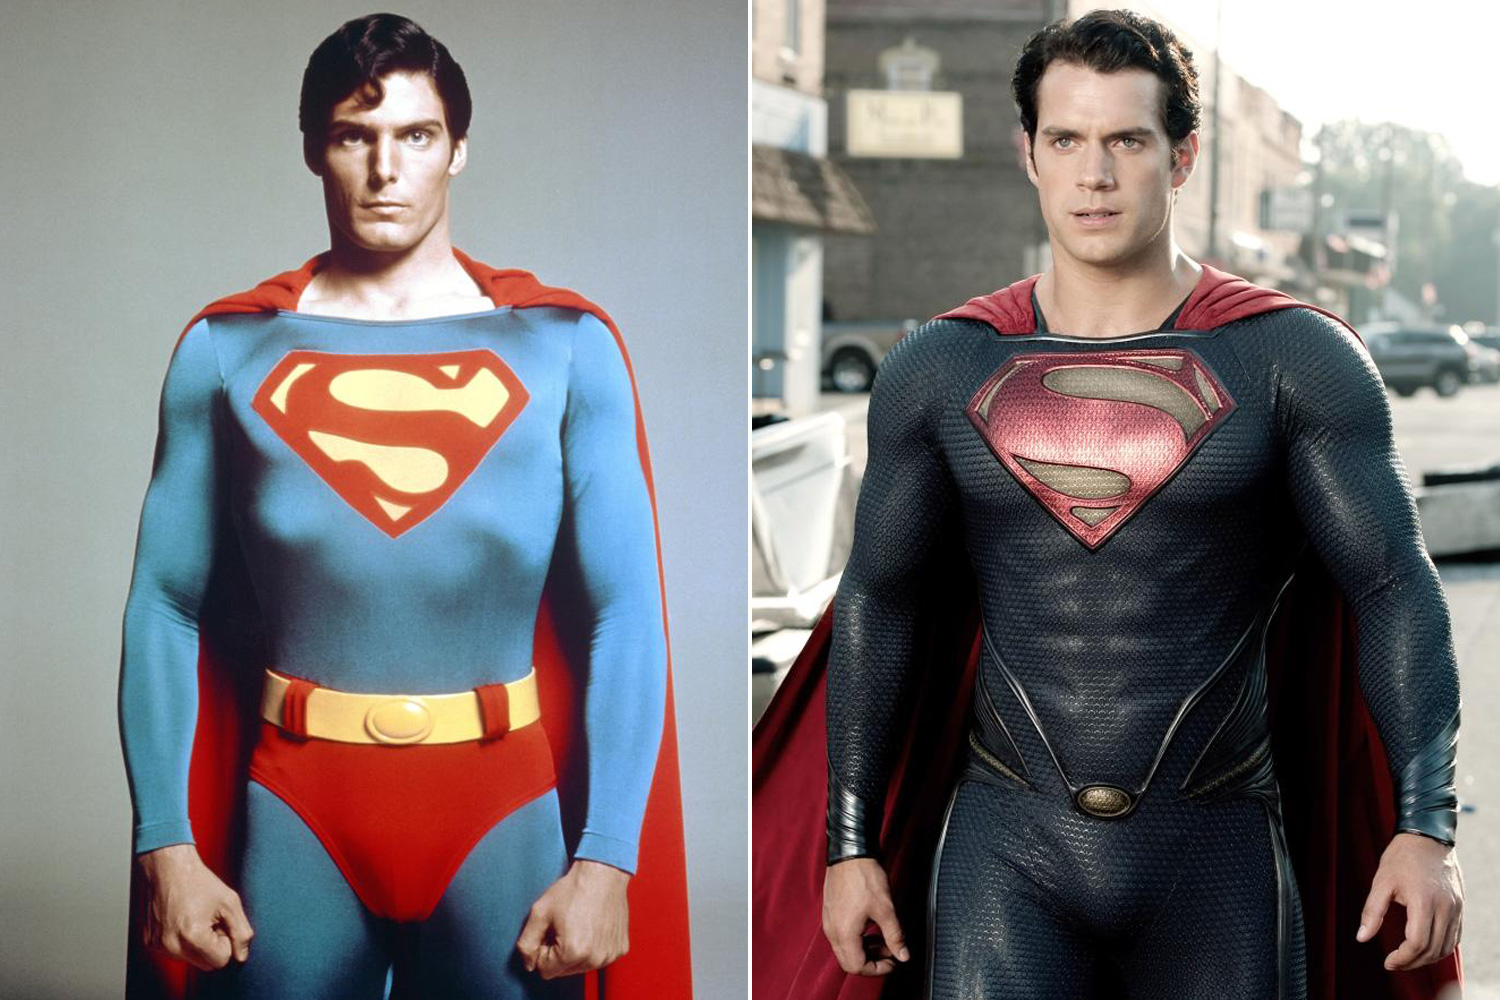 Christopher Reeve was the first to portray the iconic DC comics superhero on the big screen in the 1989 film <i>Superman</i>. The film franchise would be rebooted first in 2006 with <i>Superman Returns</i> by Bryan Singer, before being re-rebooted in Zack Snyder's 2013 film <i>Man of Steel</i> starring Henry Cavill as Superman.